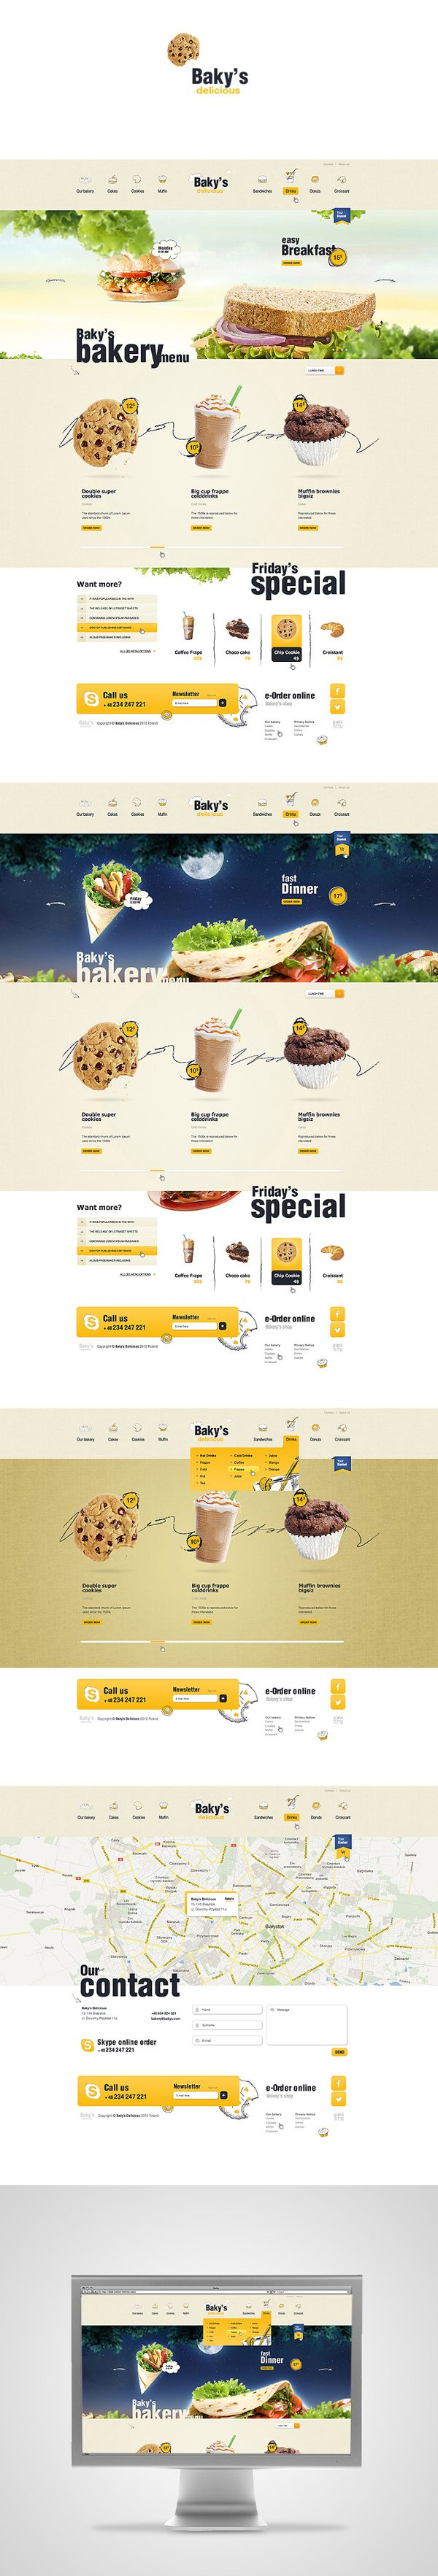 Baky's Delicious by Mateusz Parfian, via Behance